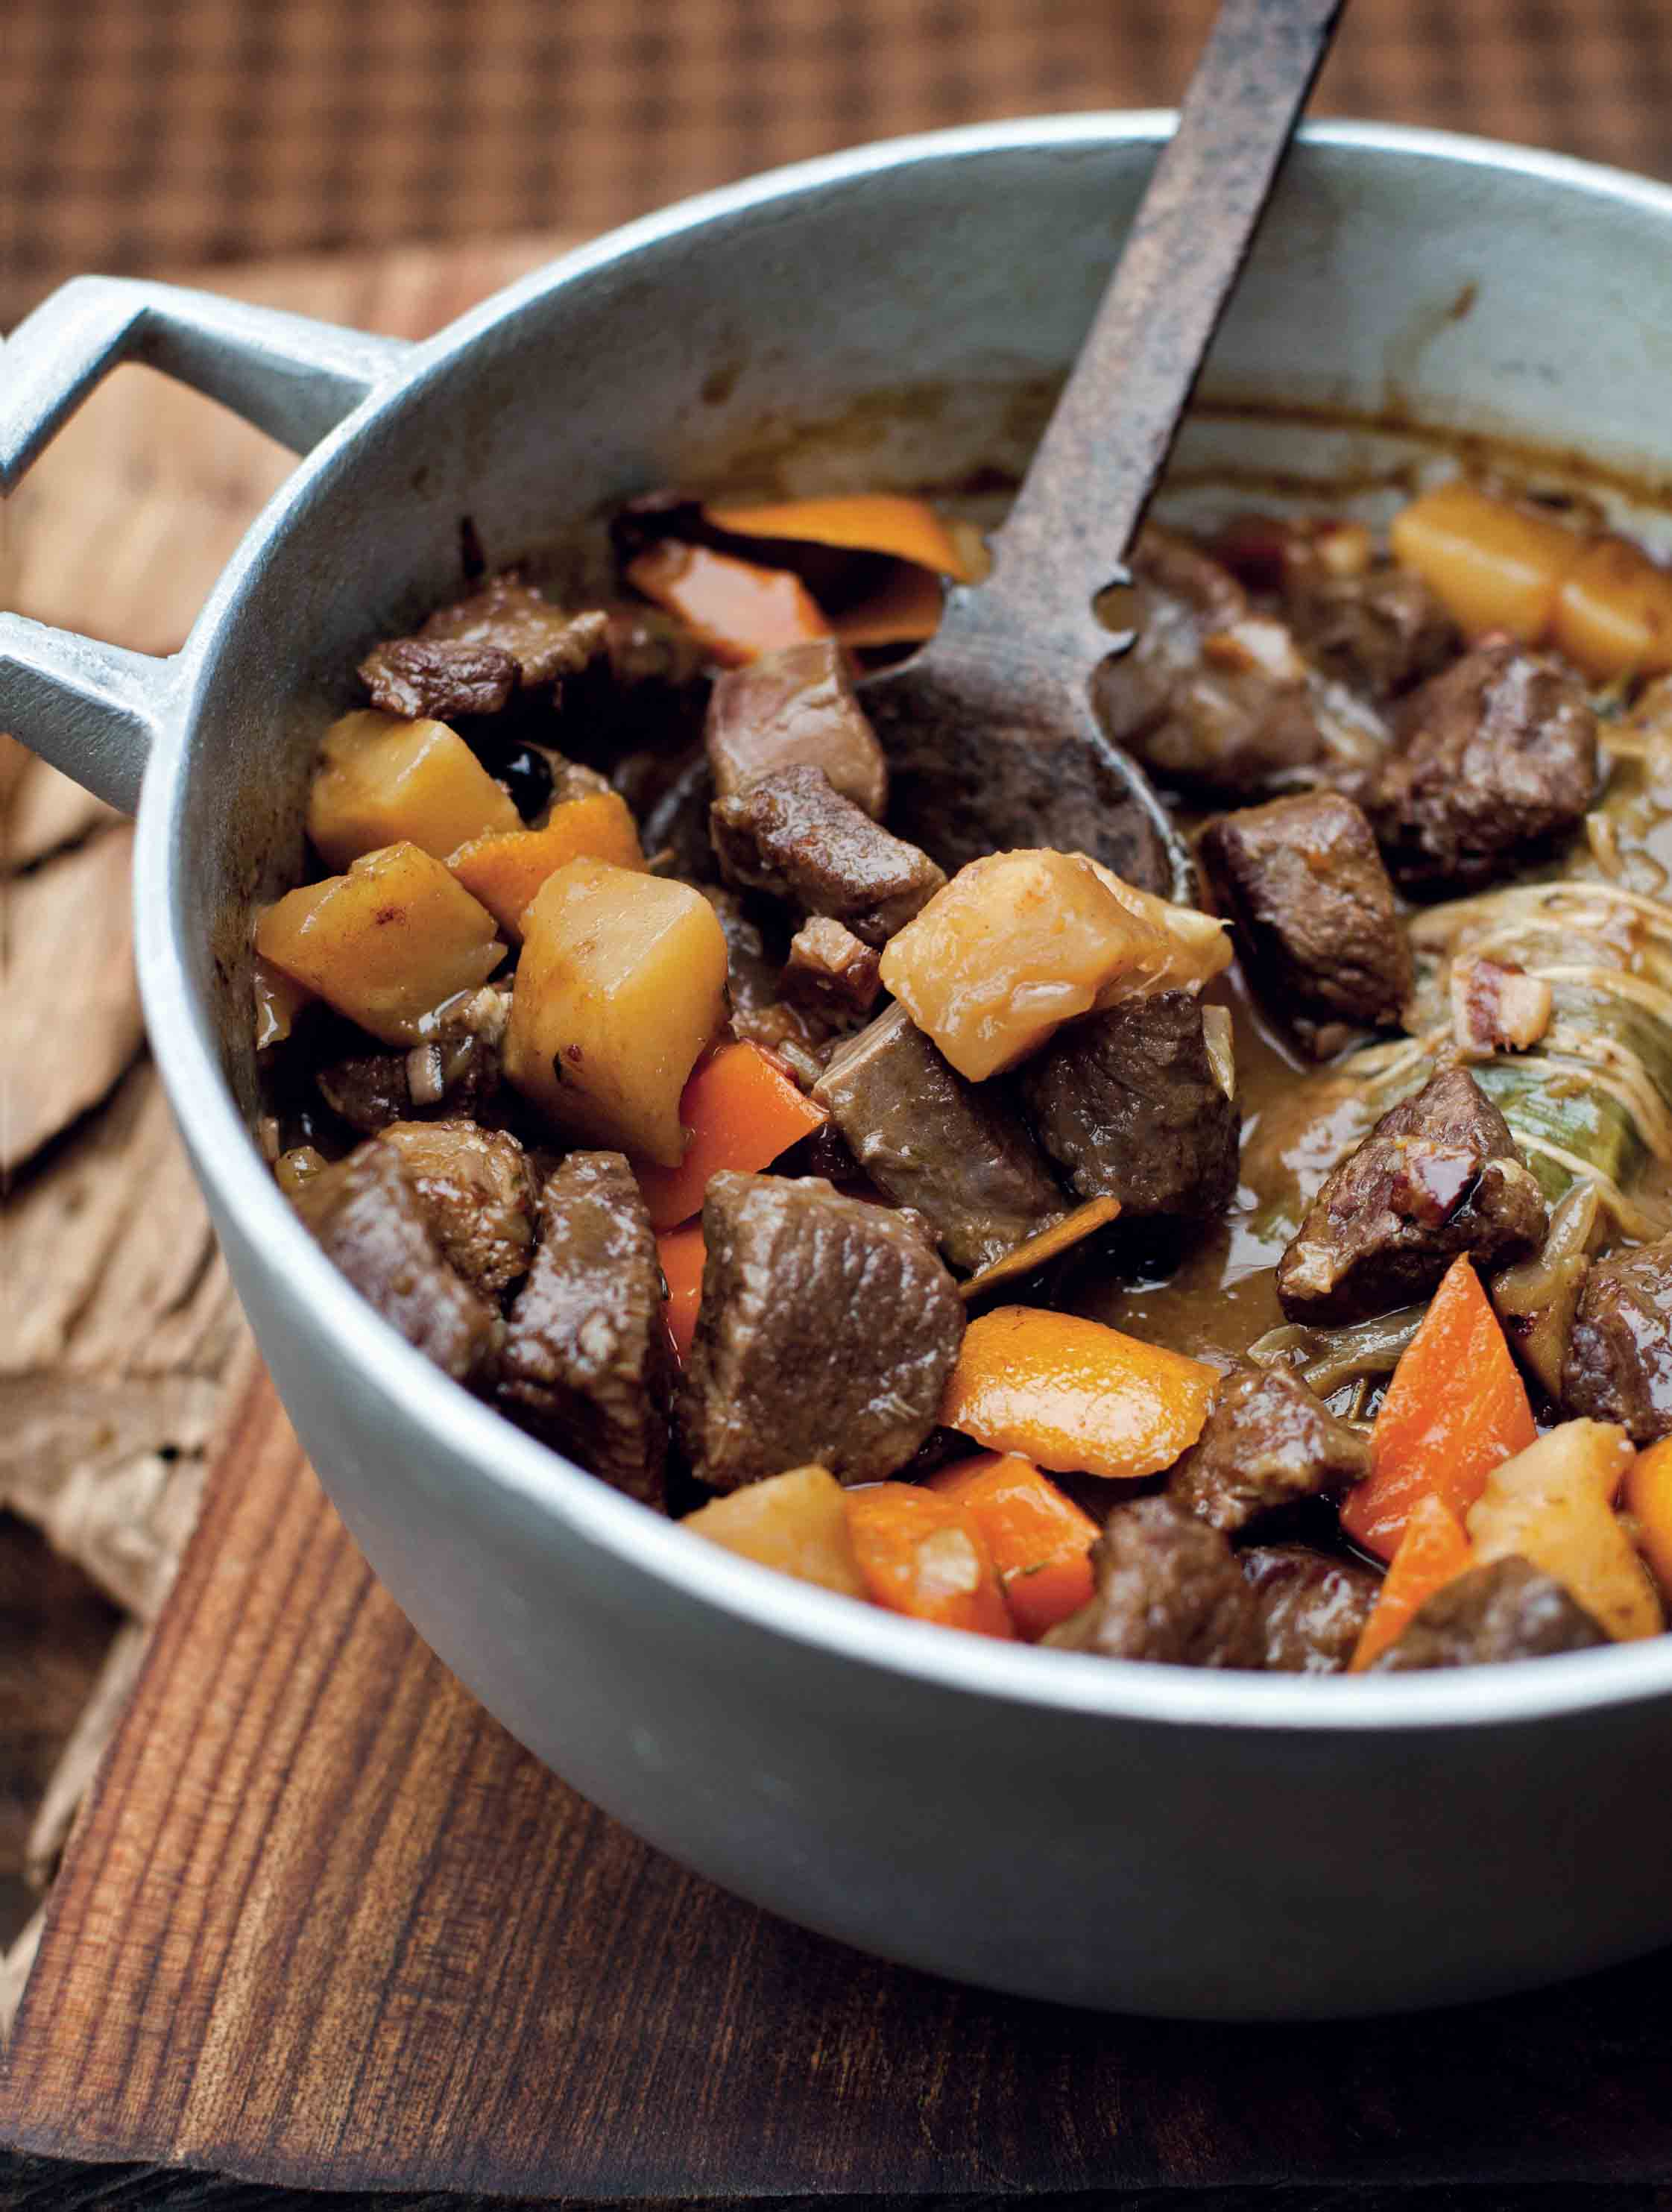 Venison stew with celeriac and orange